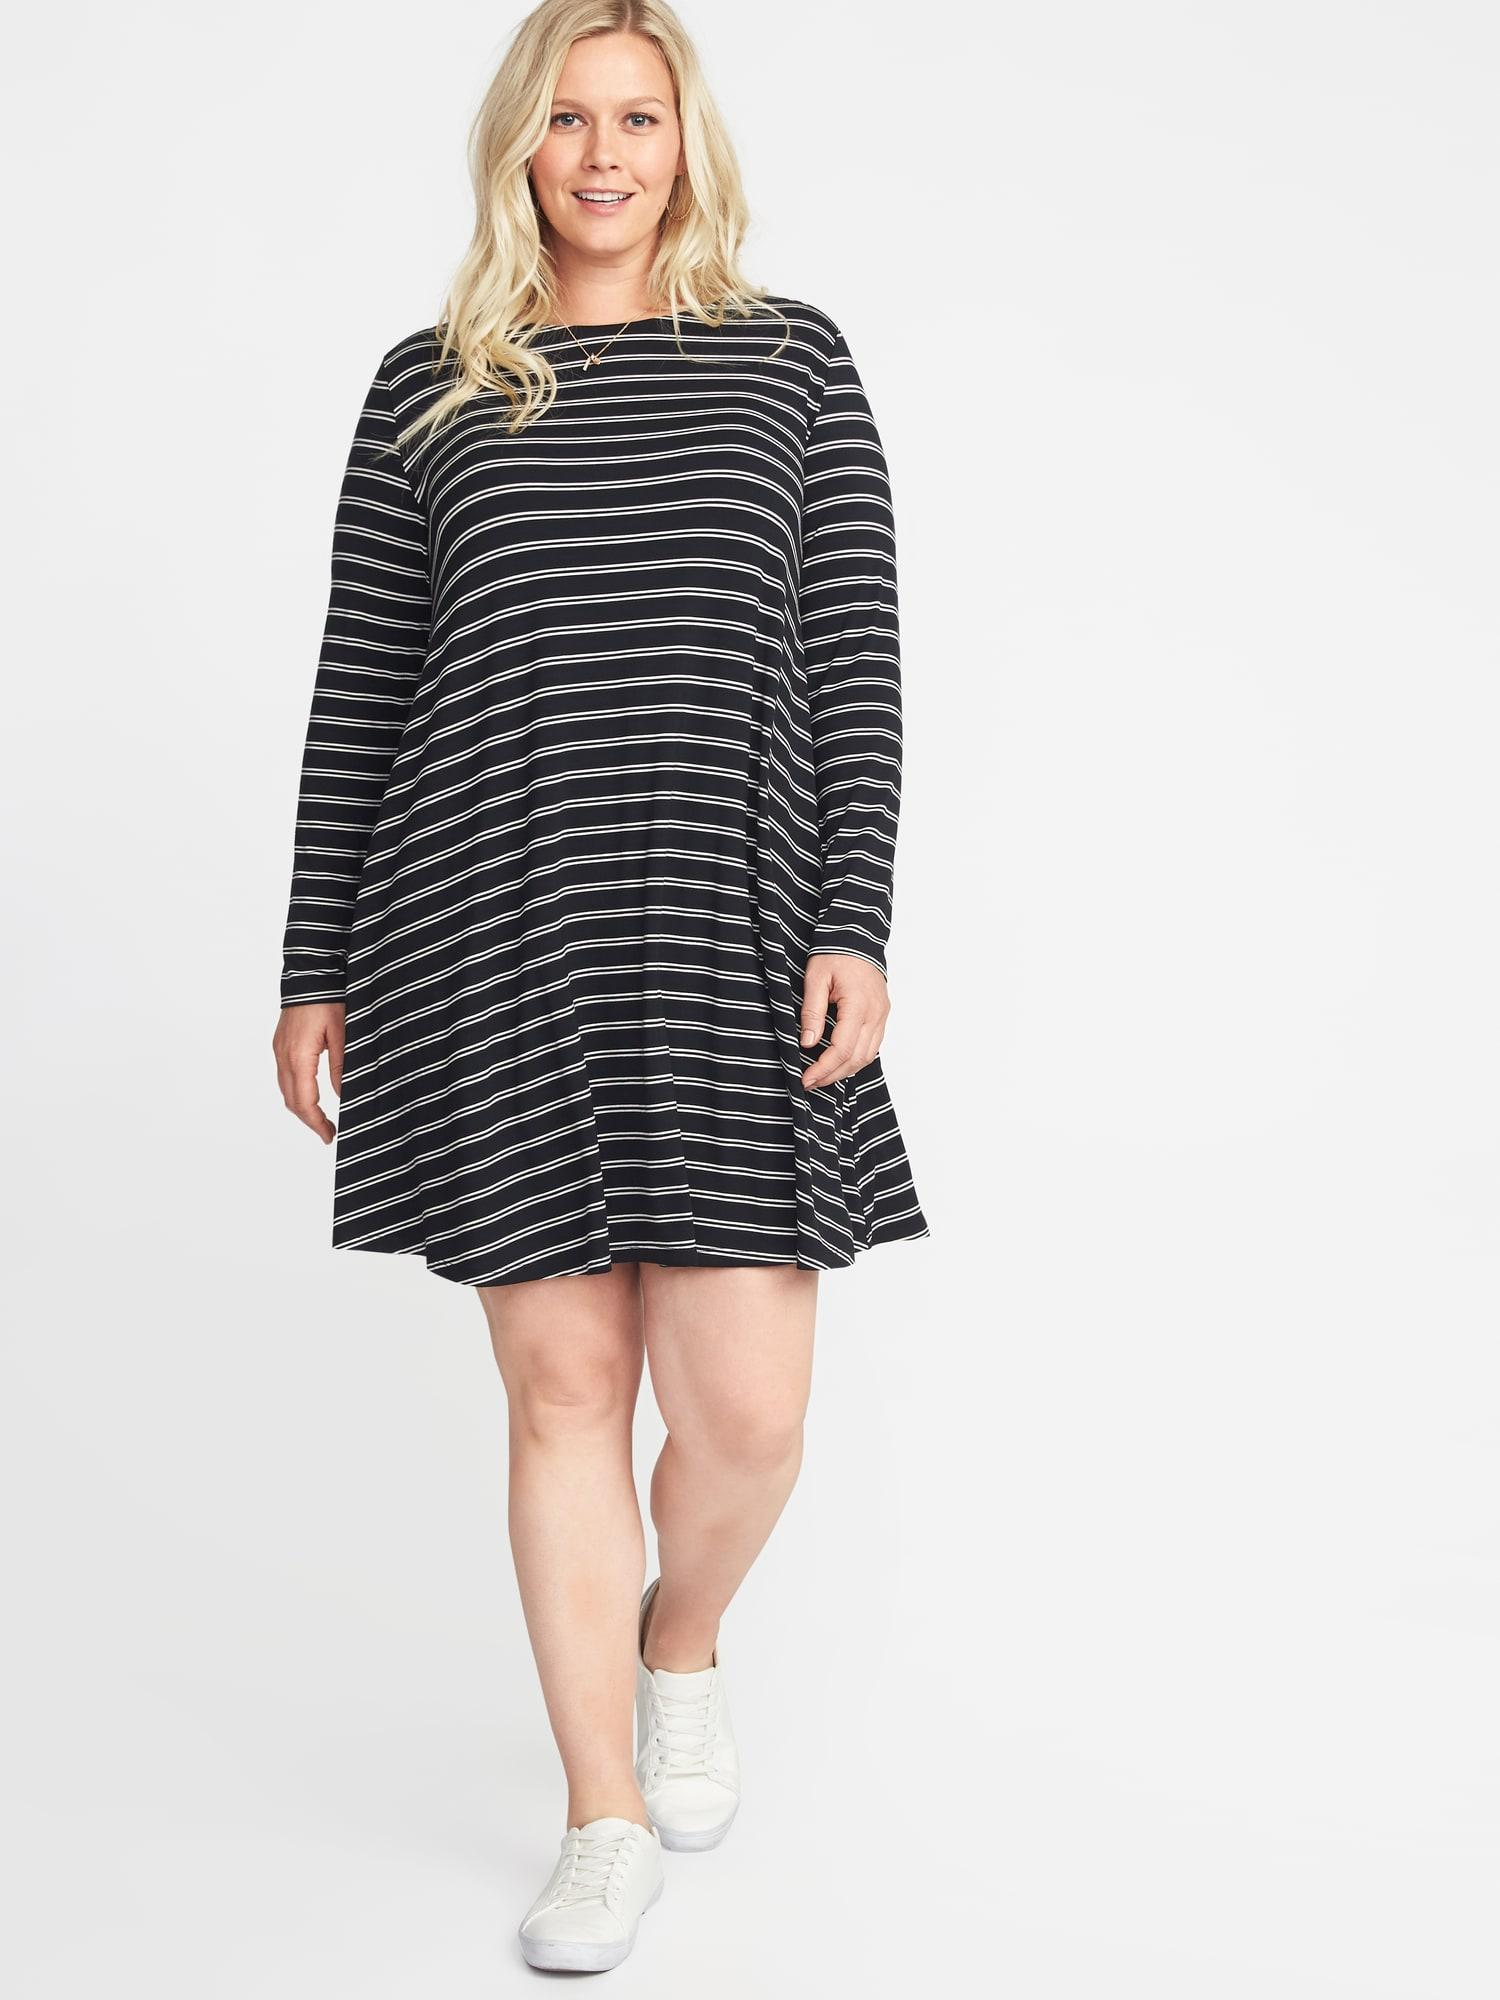 149f5cb9d382 Lyst - Old Navy Plus-size Jersey Swing Dress in Black